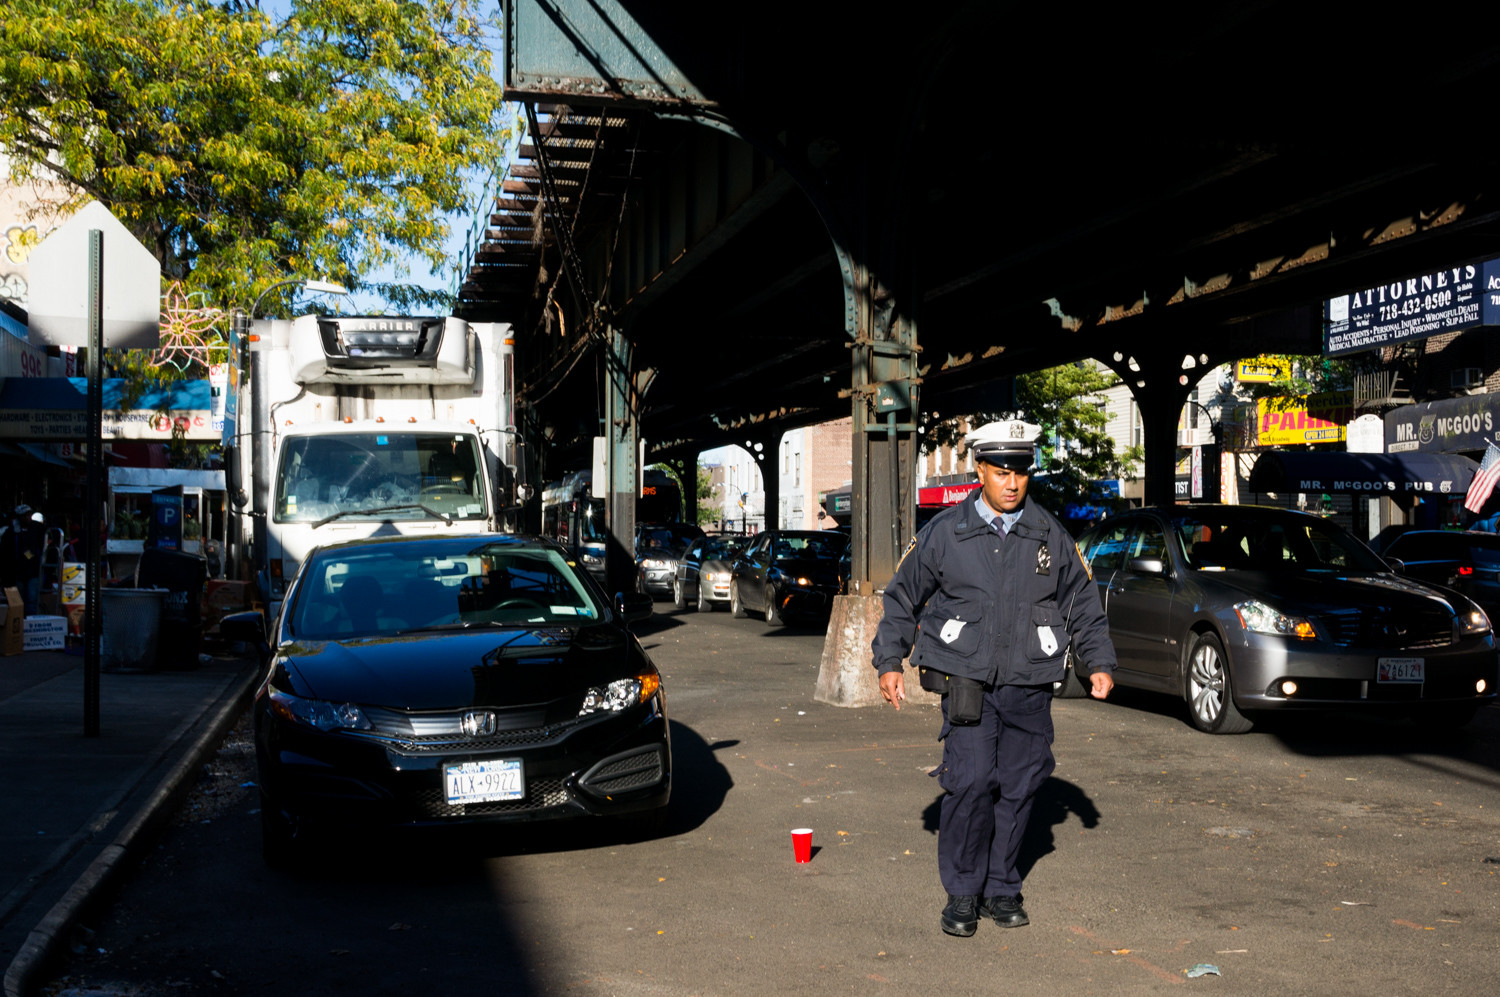 A traffic cop walks along Broadway looking for parking violators. Several recent high-profile incidents in the Bronx, including a viral video of a cop punching a 16-year-old alleged bicycle thief, have strained police-community relations.